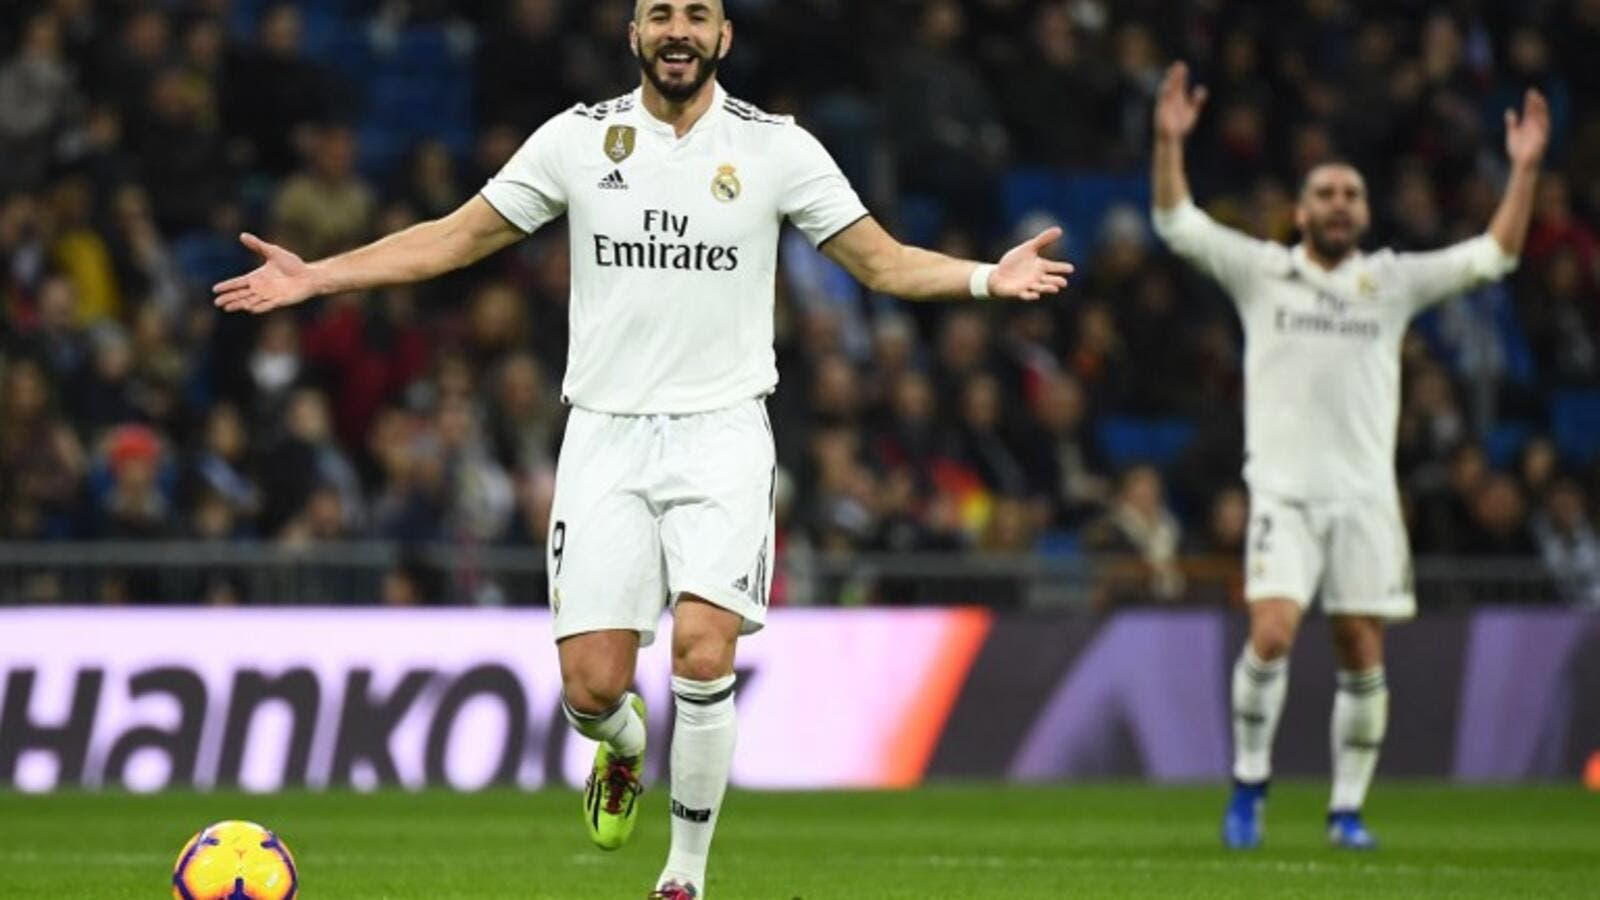 Karim Benzema scored the only goal as Real Madrid secured a third straight LaLiga win, beating Rayo Vallecano at Santiago Bernabeu Stadium.